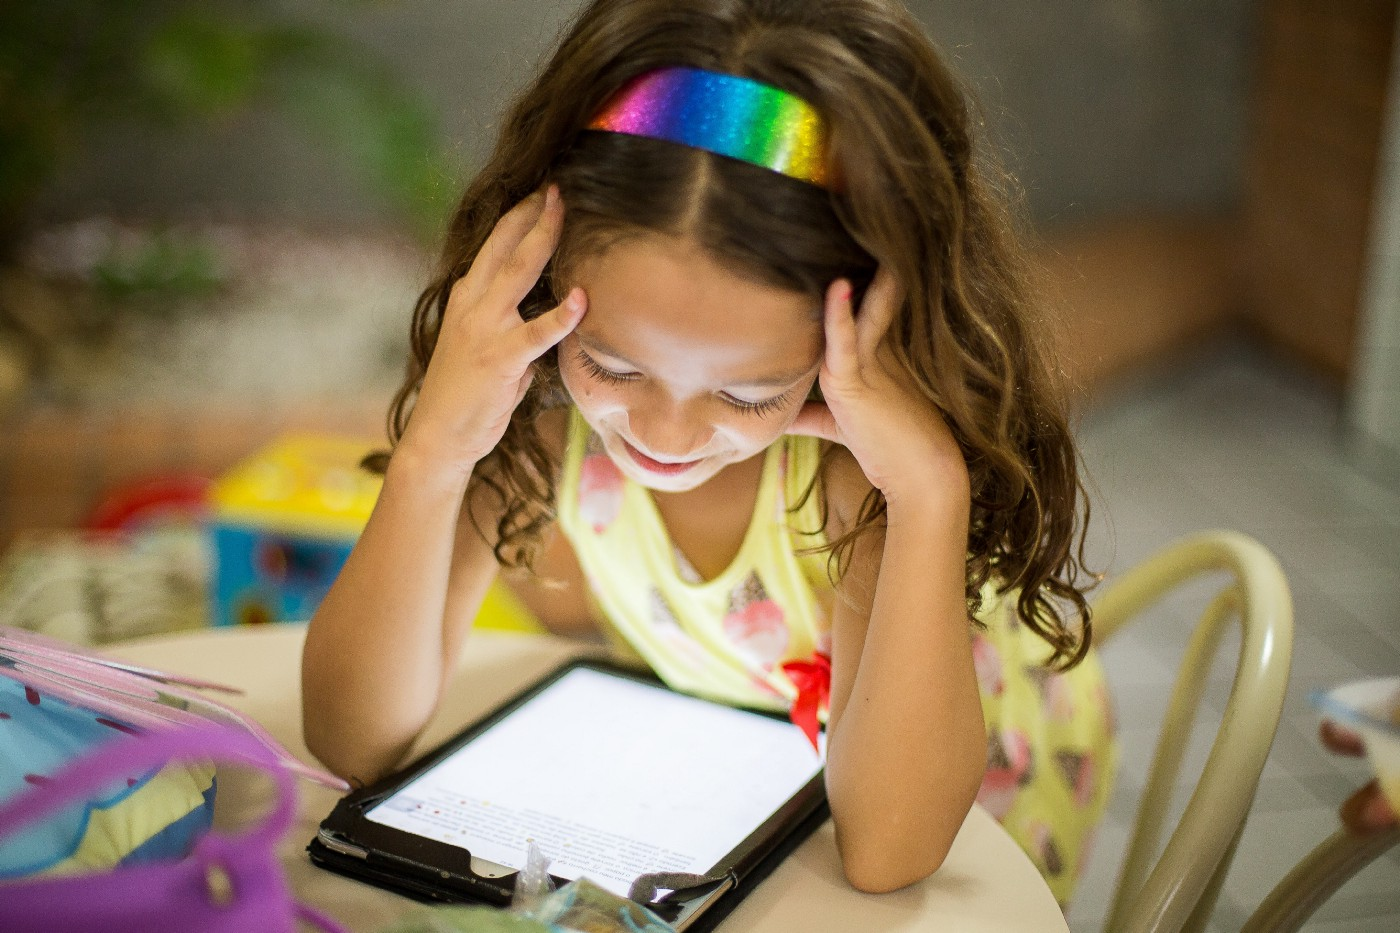 Girl wearing a rainbow headband sitting and looking and down at a tablet device.